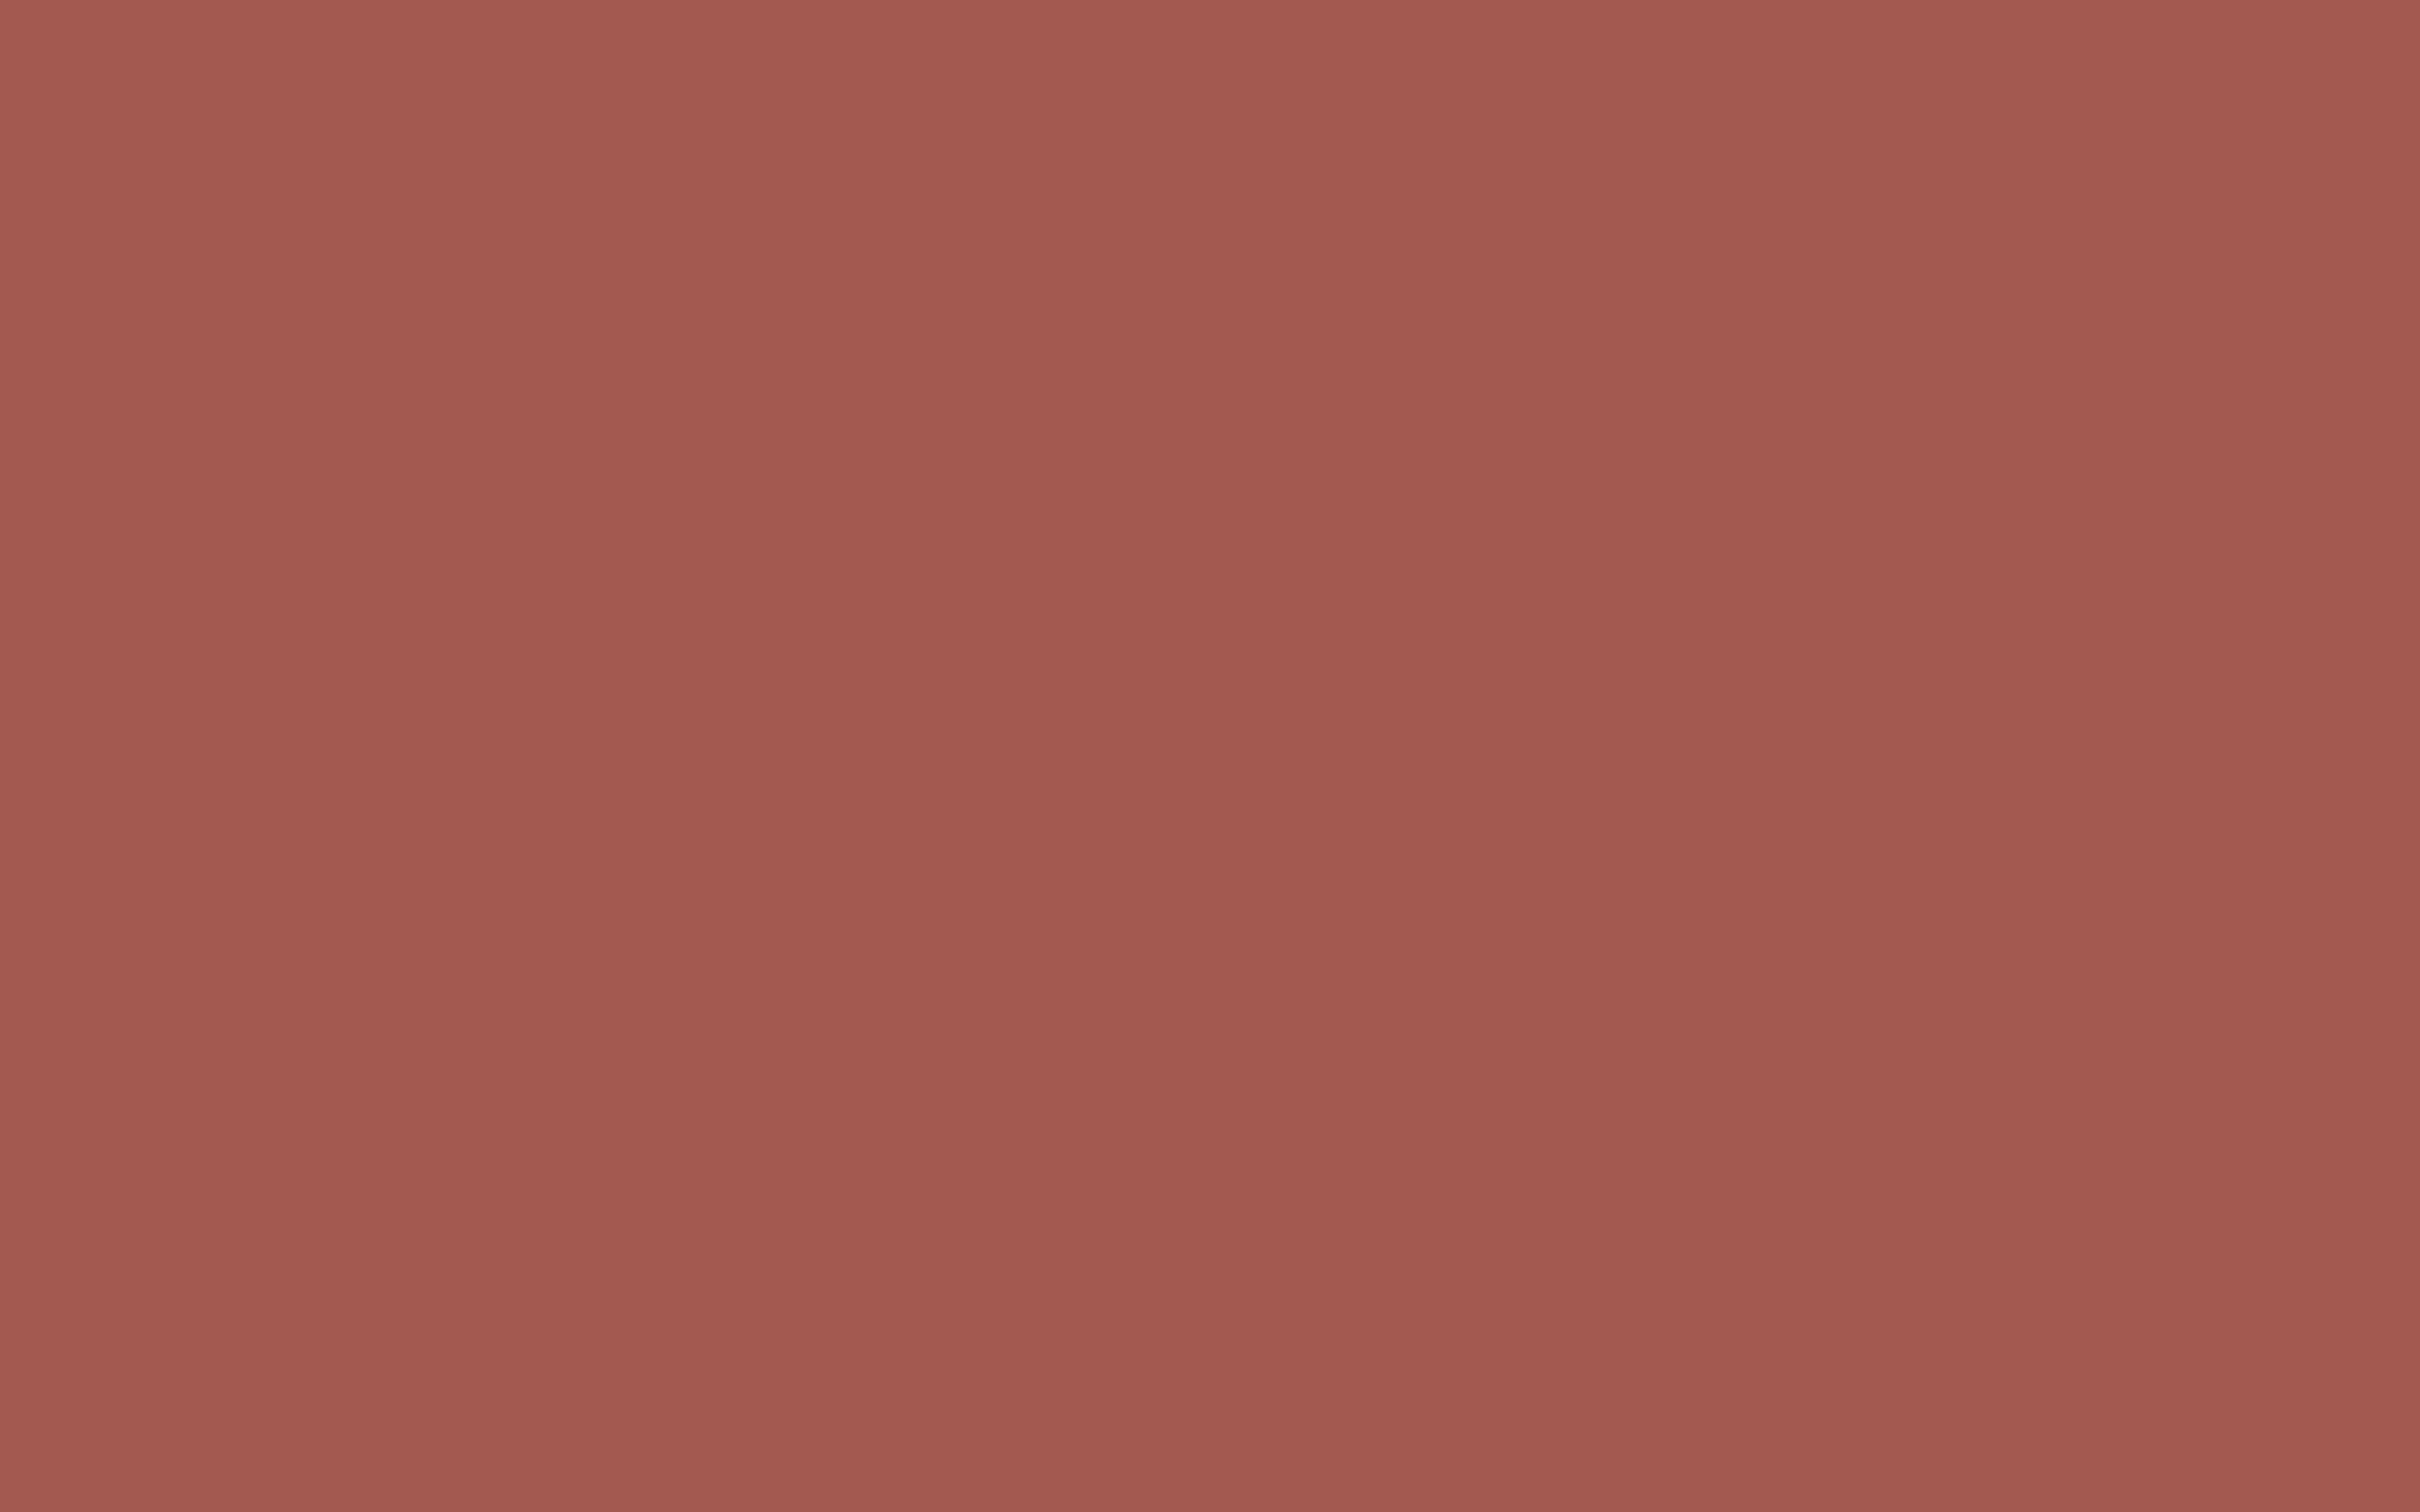 2560x1600 Redwood Solid Color Background